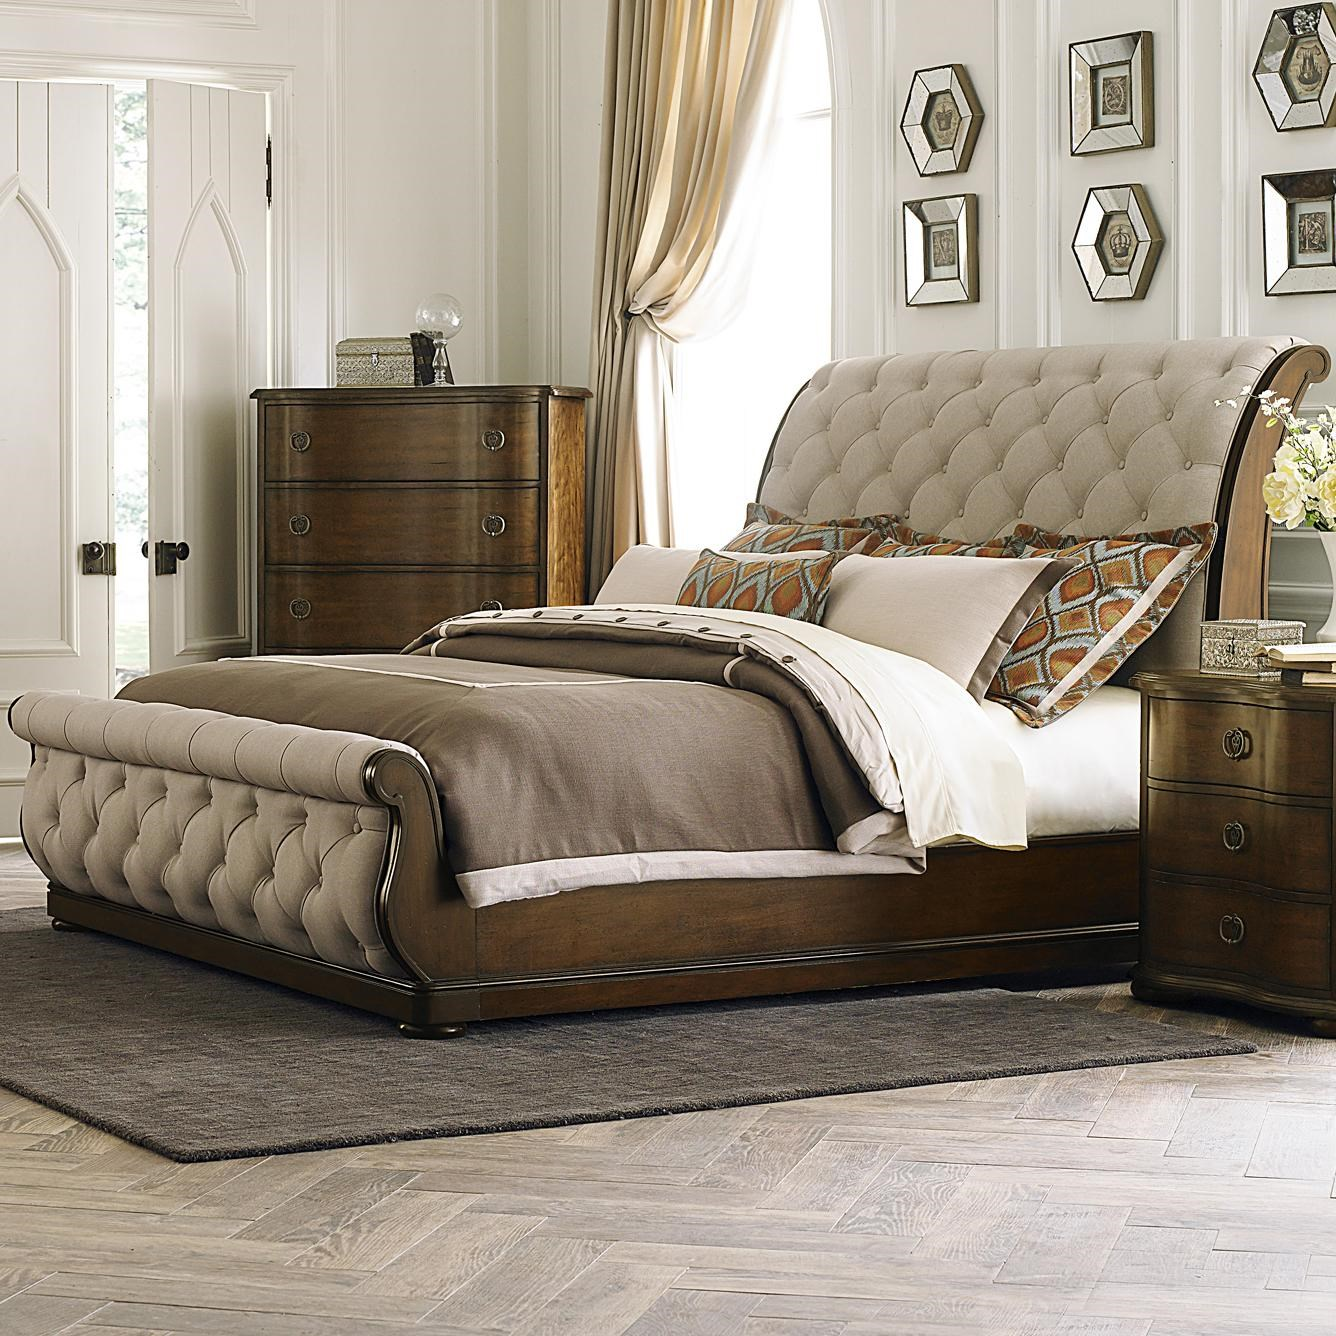 Picture of: Liberty Furniture Cotswold Transitional Upholstered King Sleigh Bed Royal Furniture Sleigh Beds